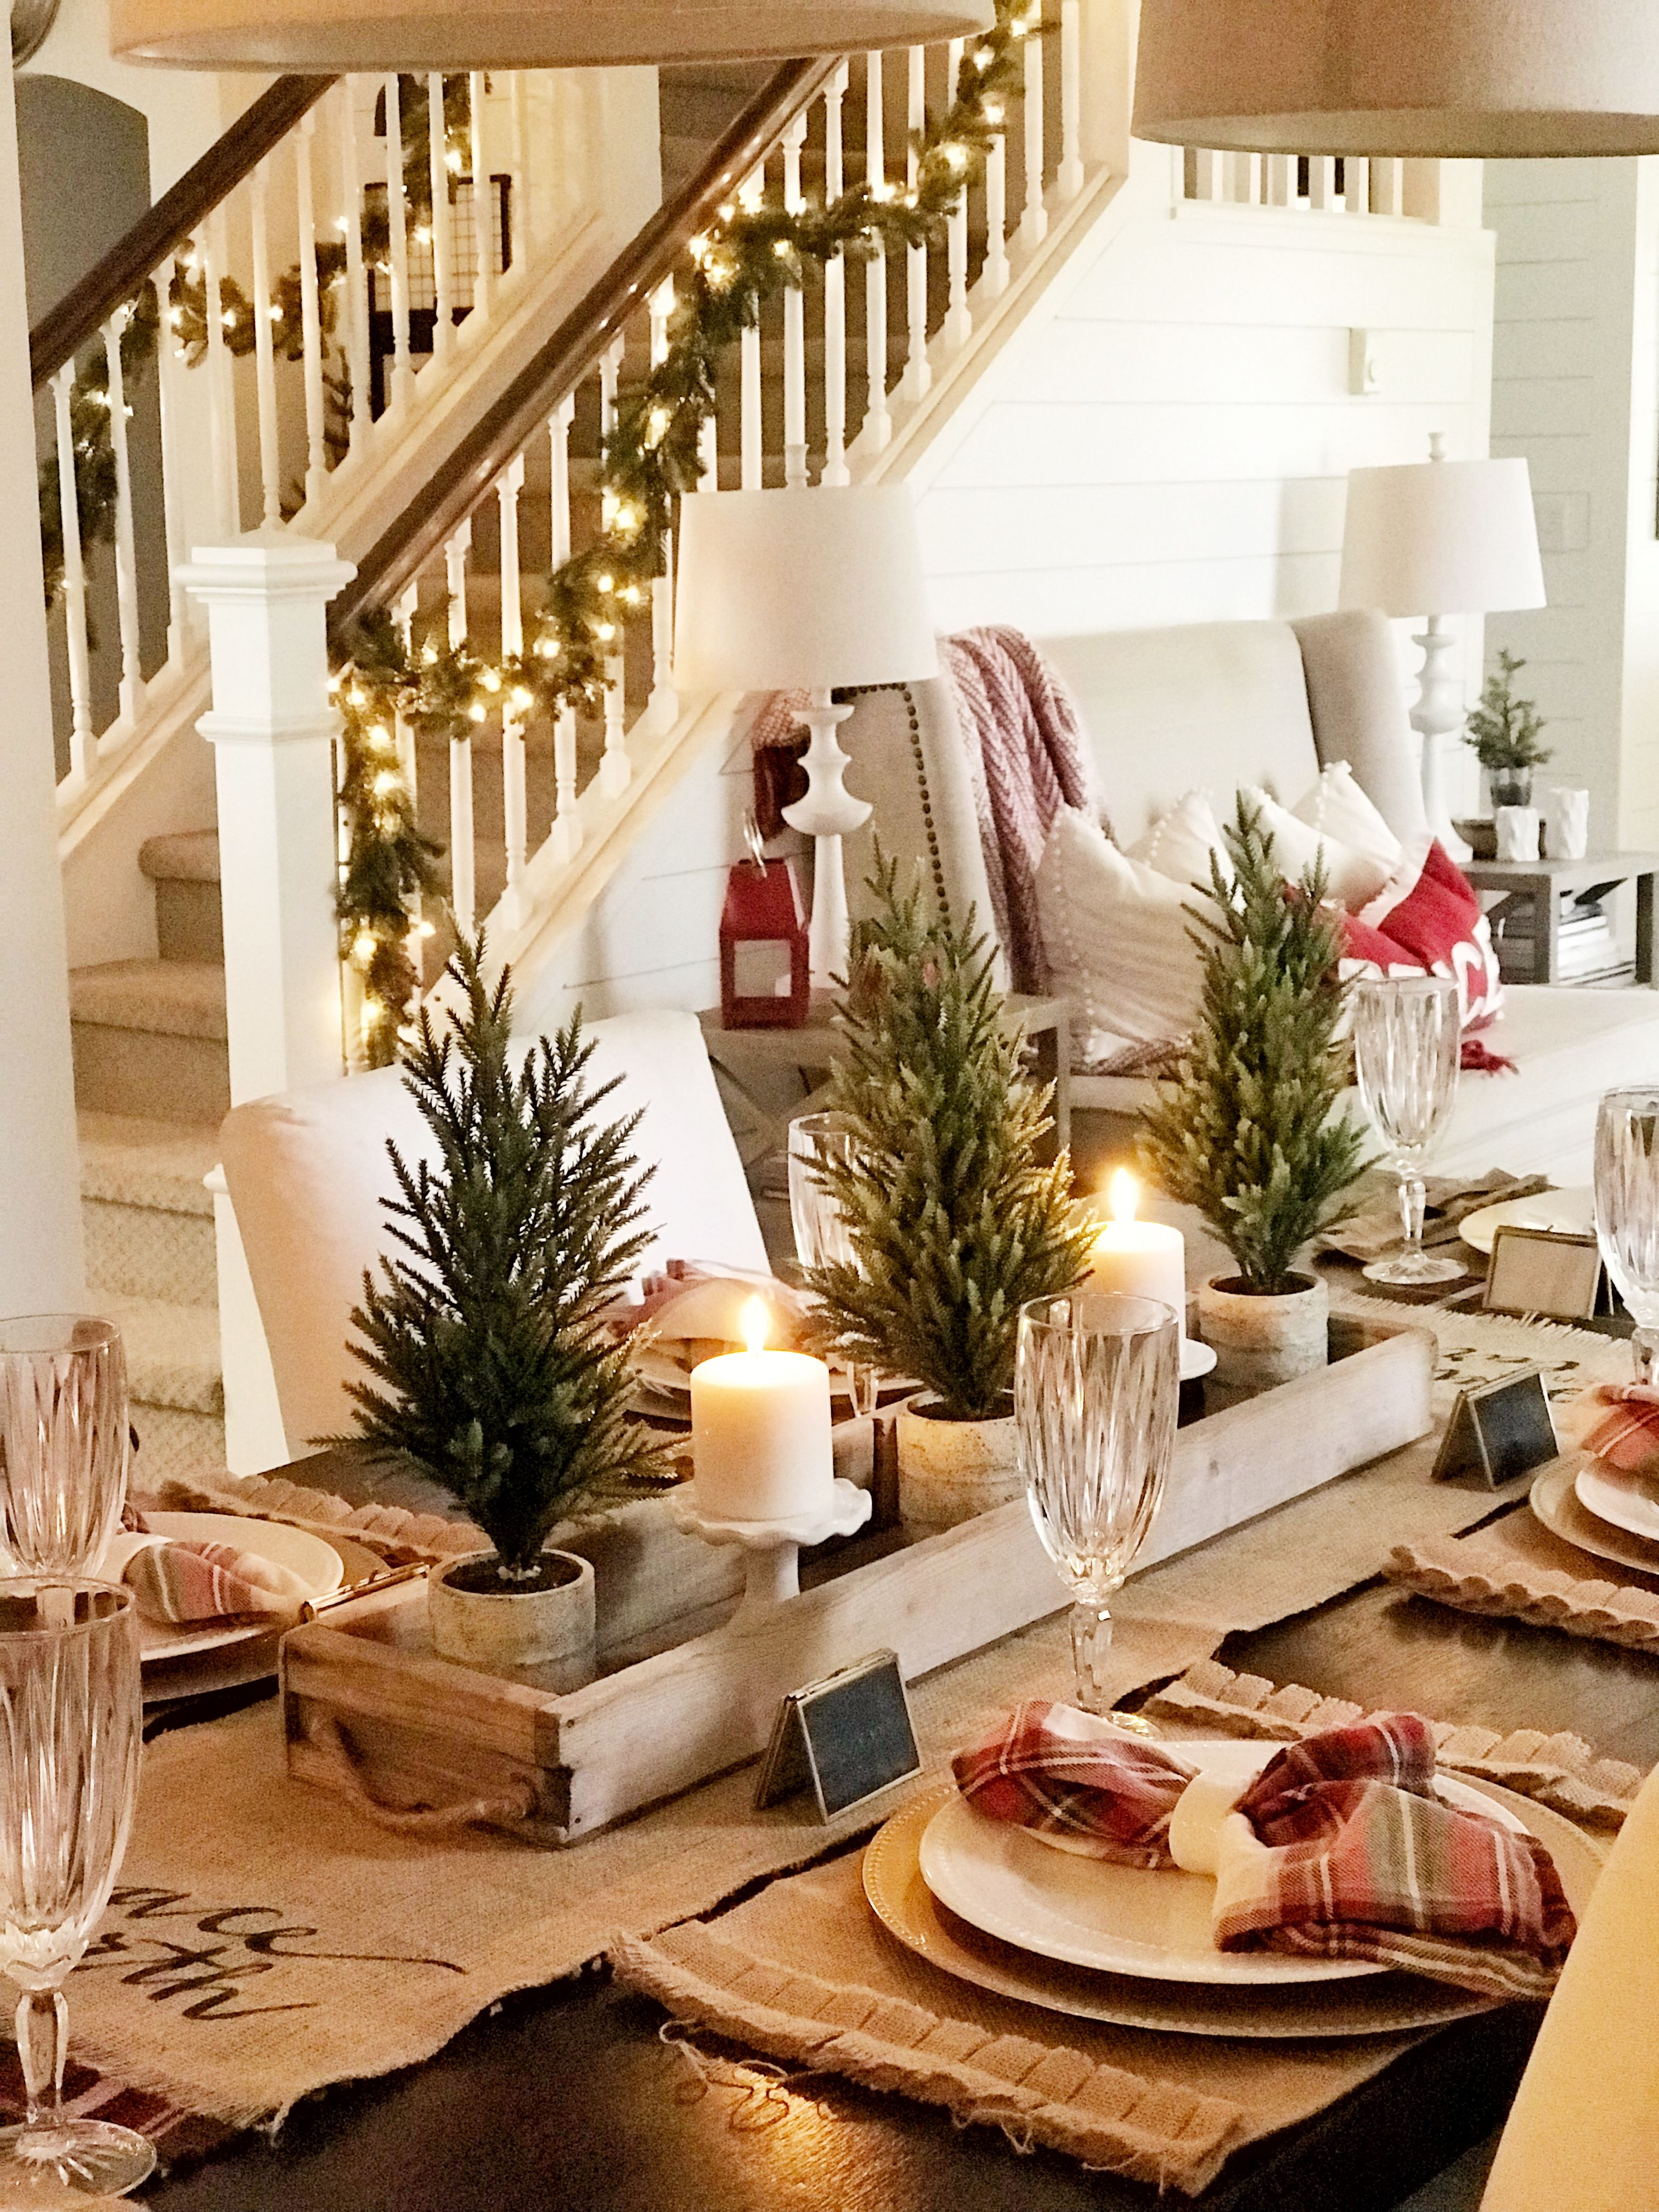 Christmas Decor Ideas for Your Dining Room Decor: Simple and